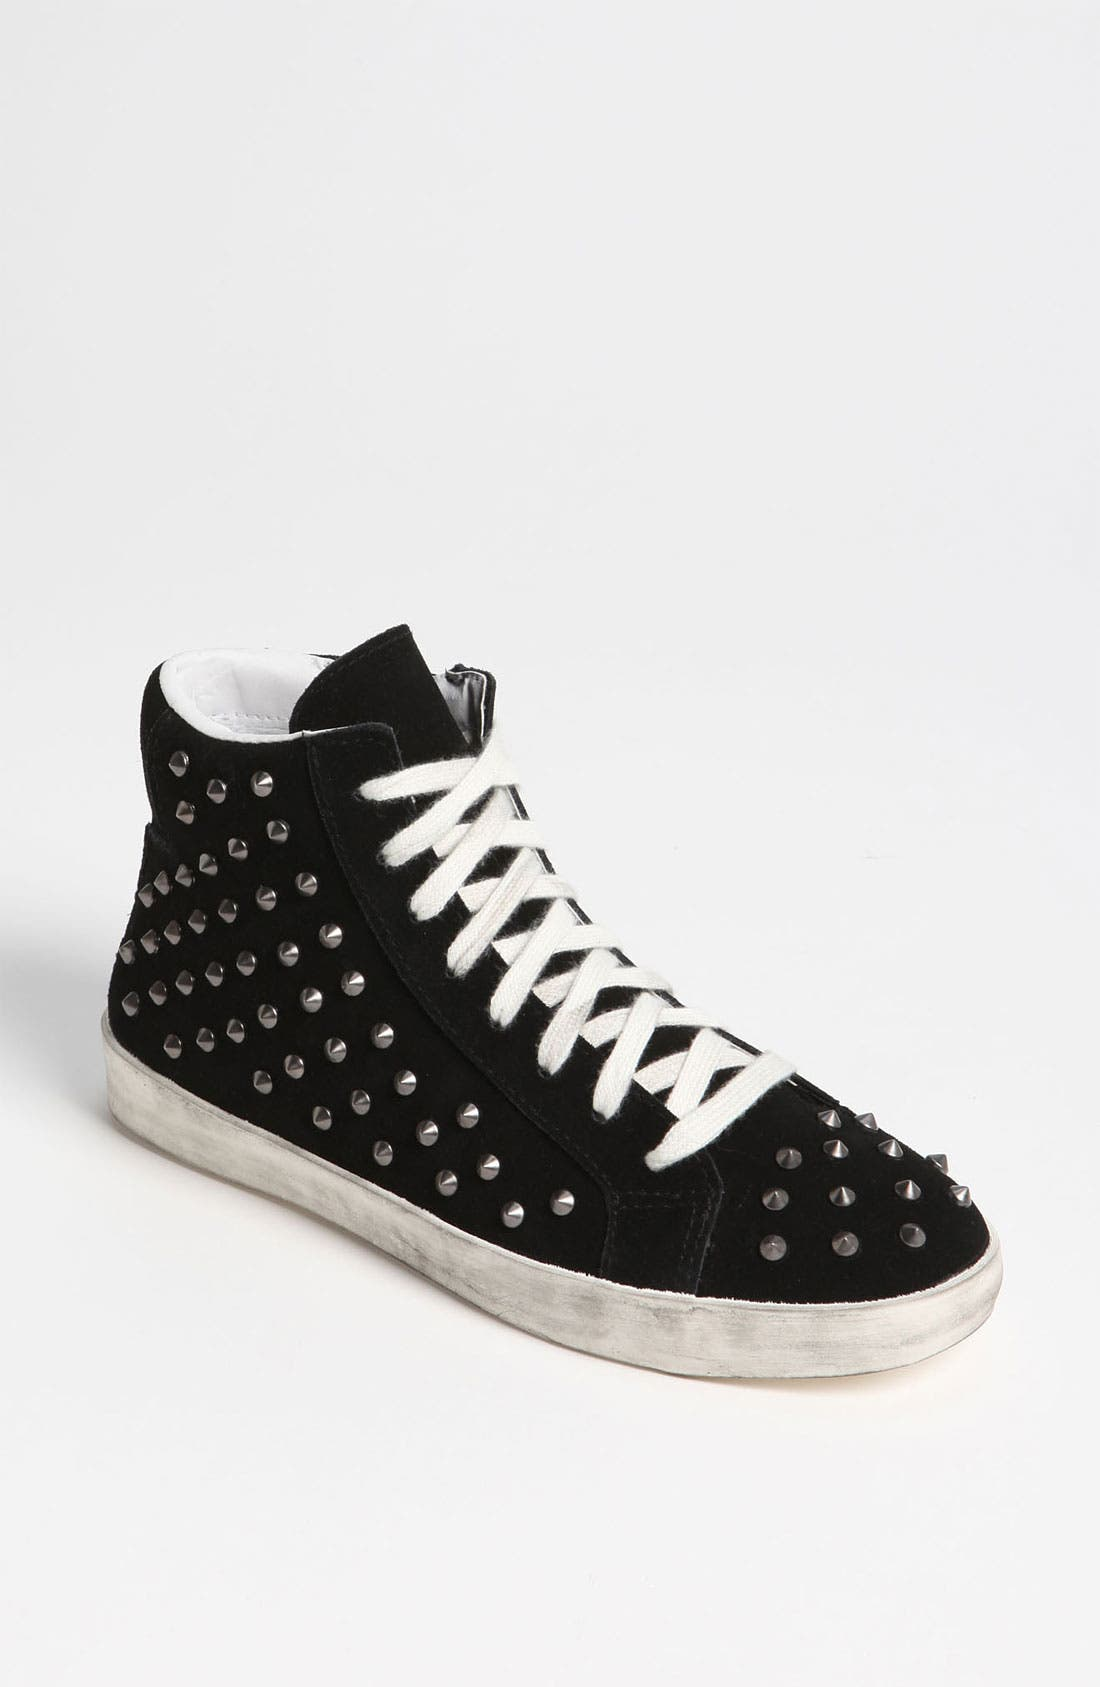 Alternate Image 1 Selected - Steve Madden 'Twynkle' Studded Sneaker